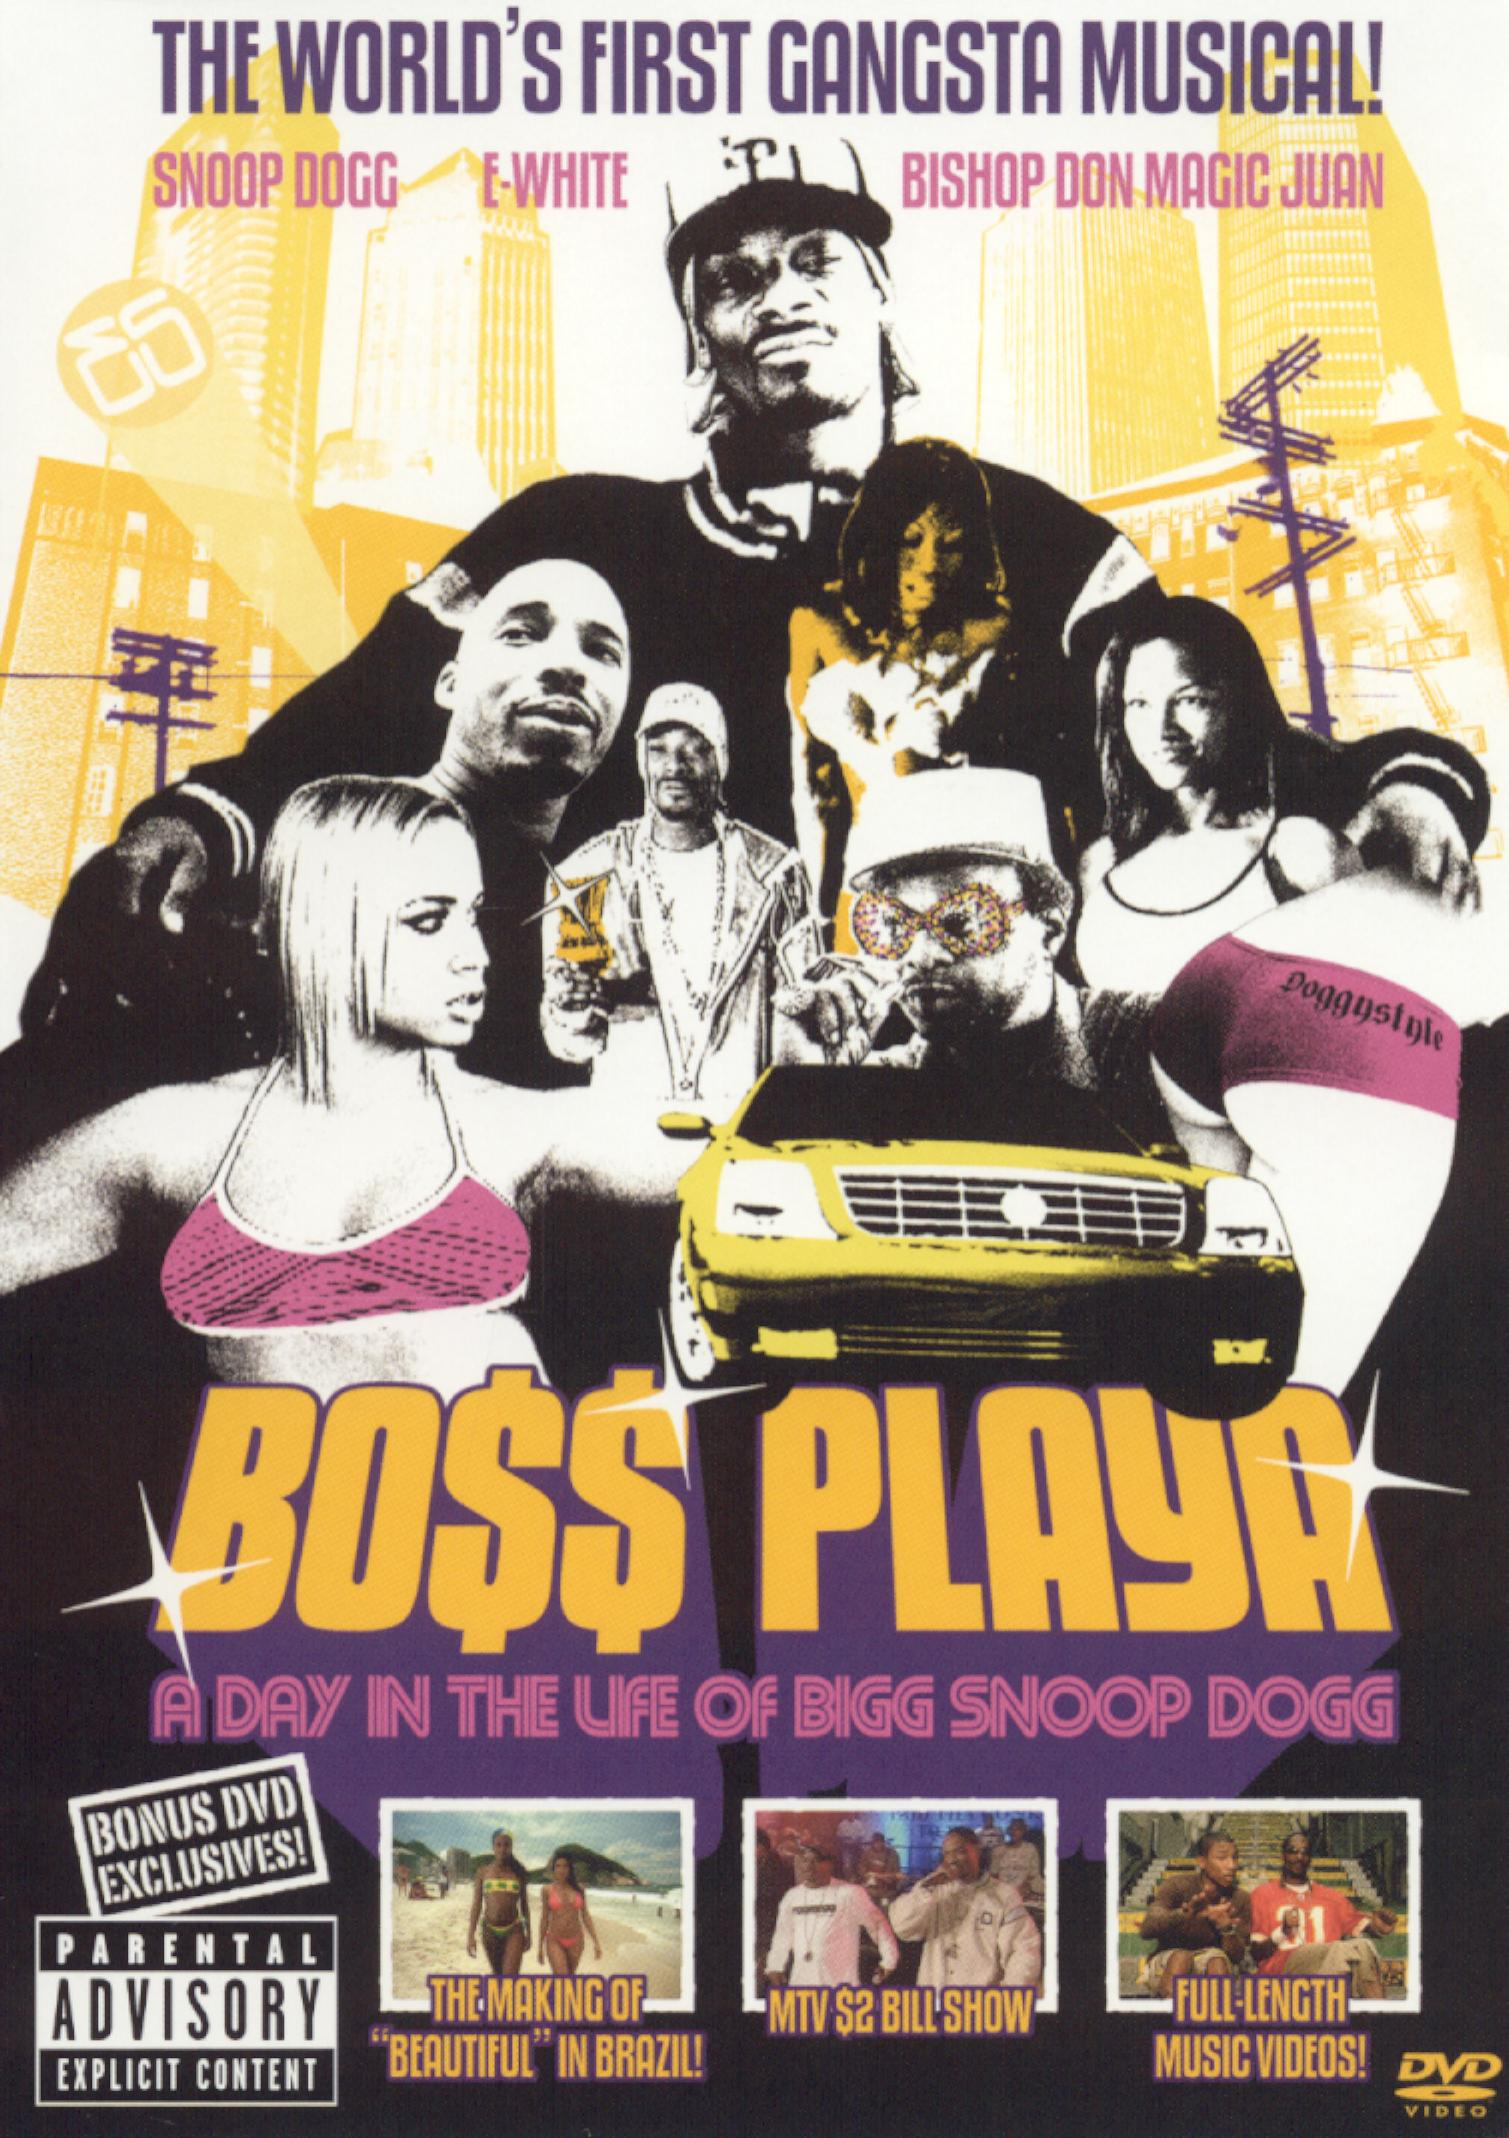 Snoop Dogg: Boss Playa - A Day in the Life